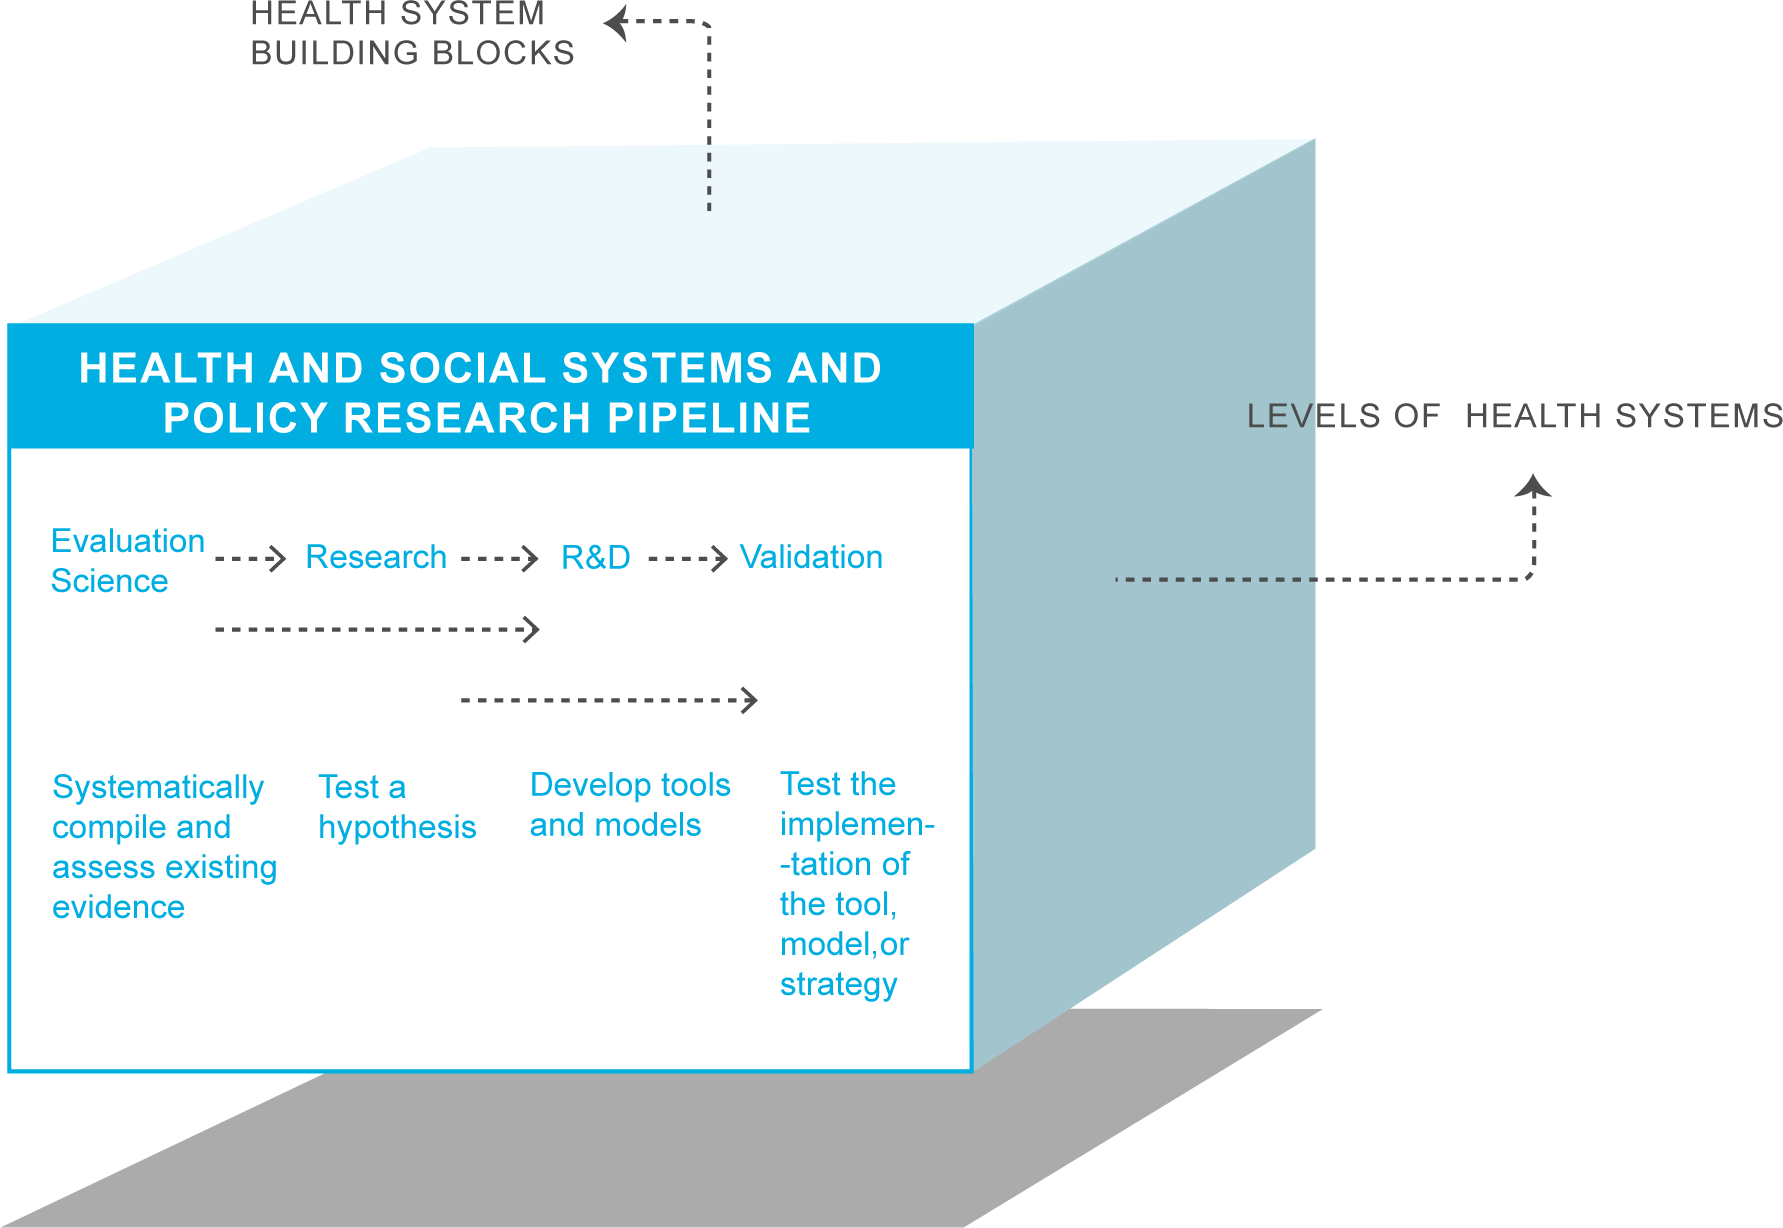 Research agenda cube for health systems and policy research.